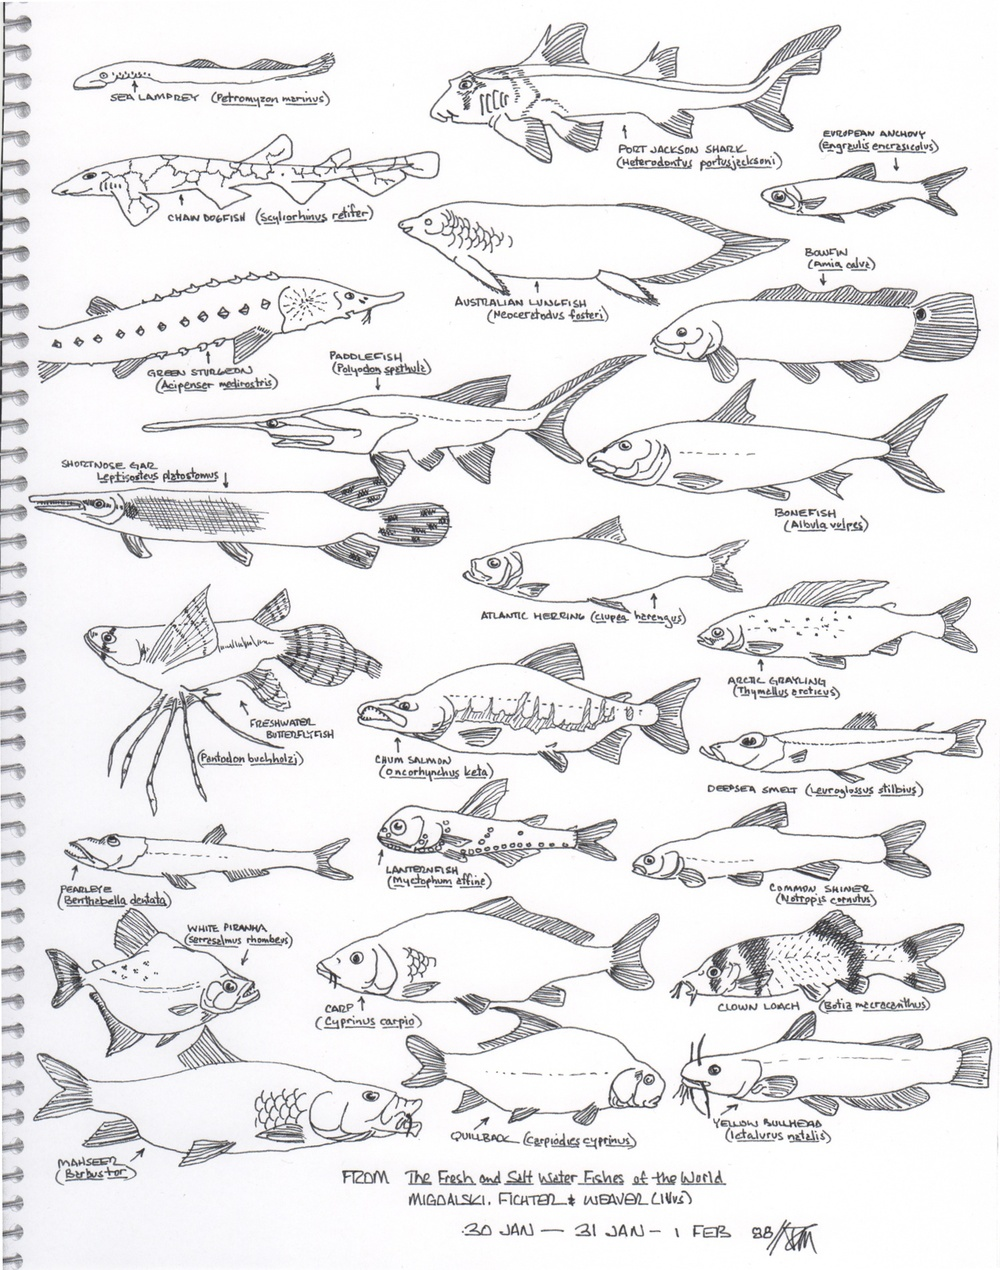 A page of fishes. © Fred Montague